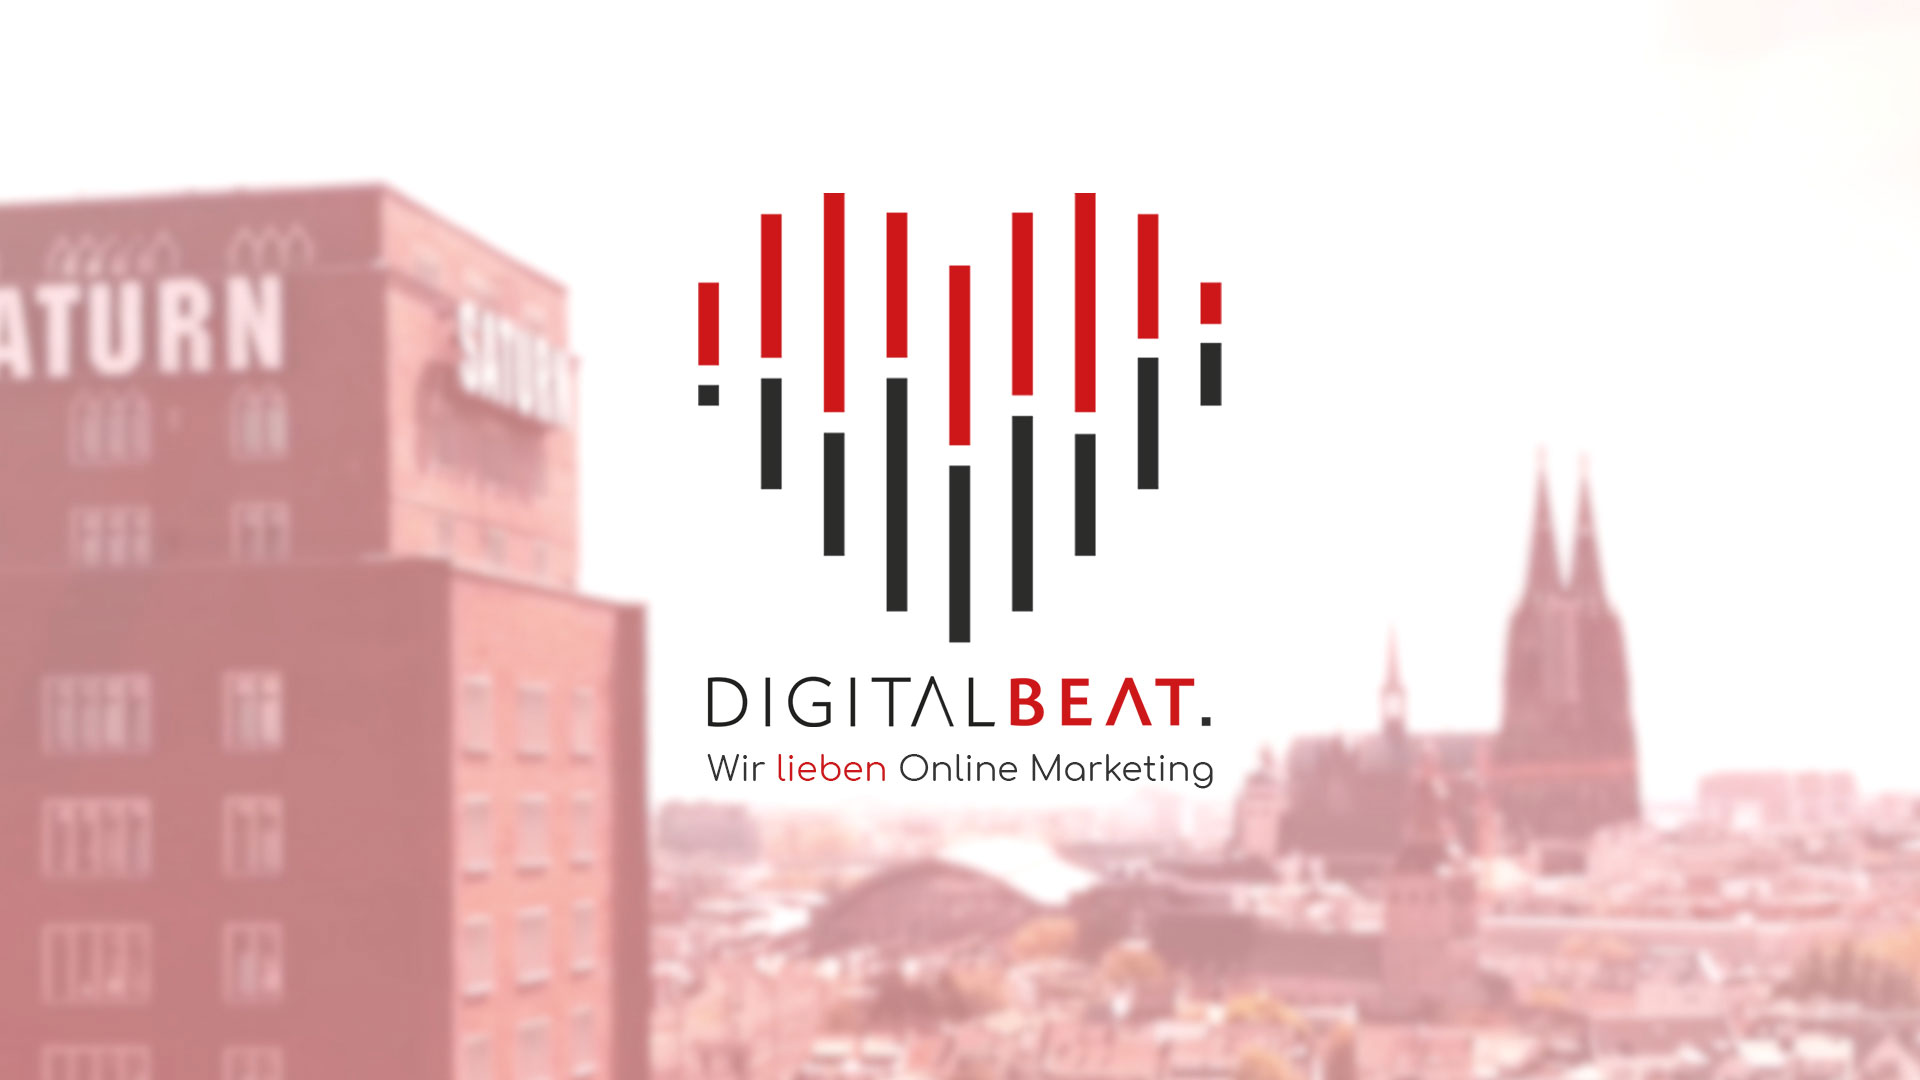 Digitalbeat-Titelbild